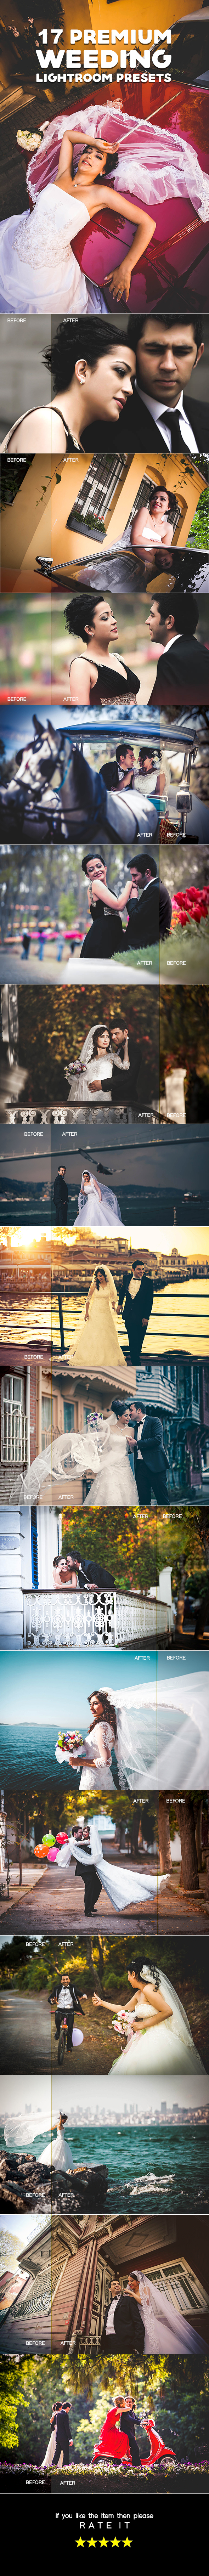 GraphicRiver Premium Wedding Lightroom Presets 20654012